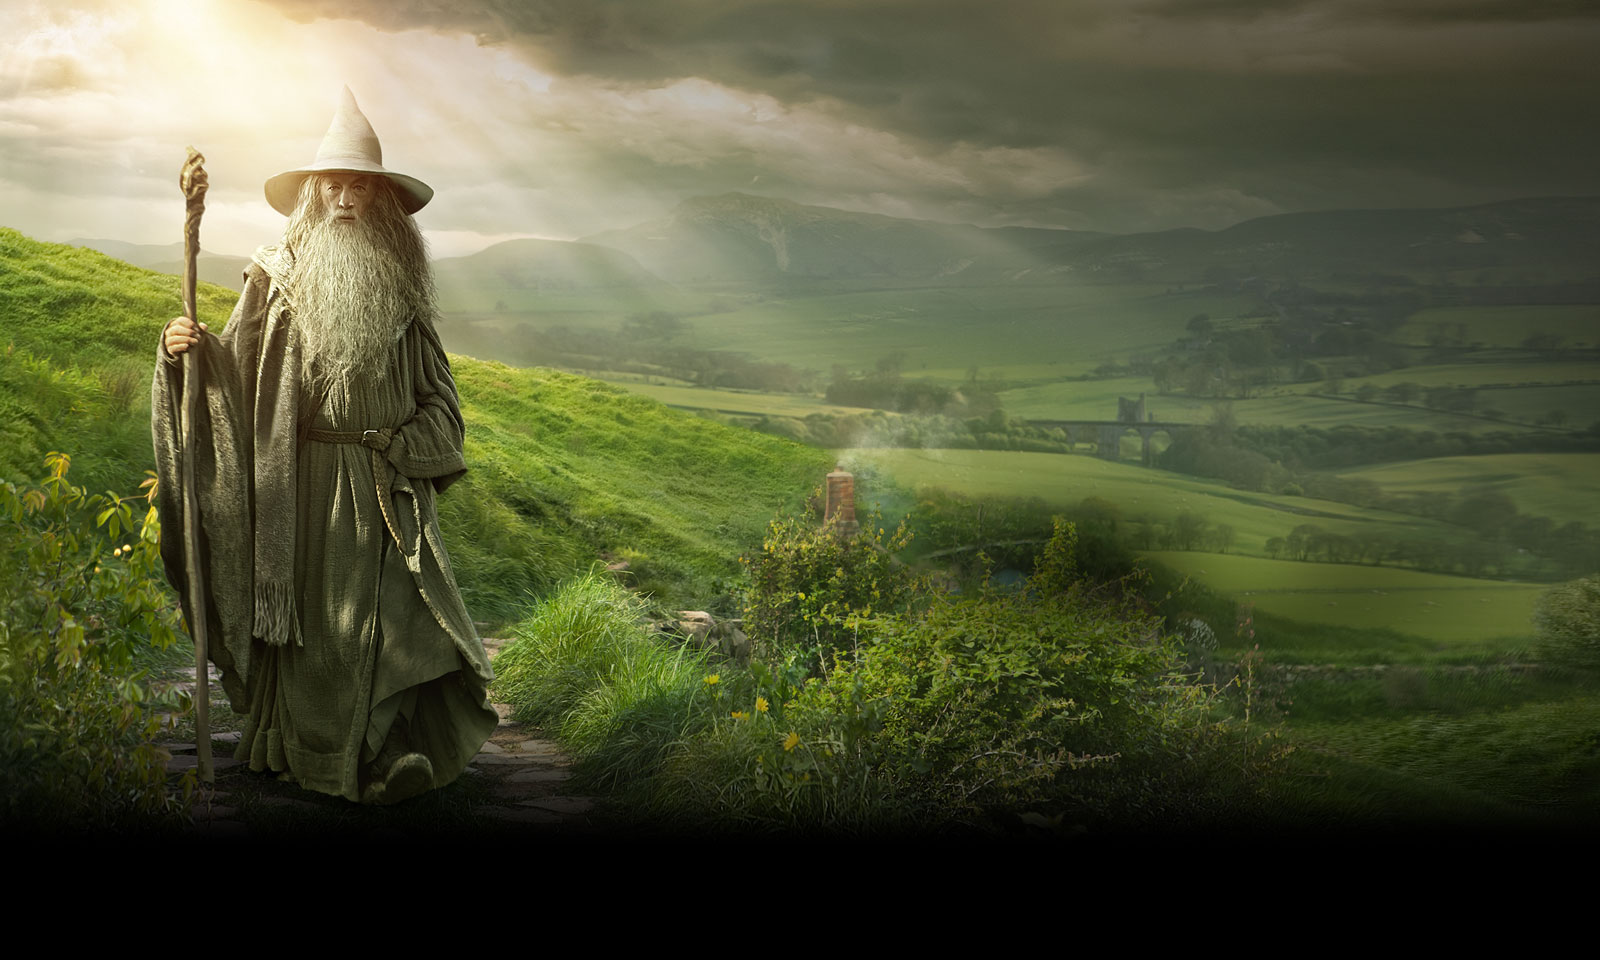 The Hobbit An Unexpected Journey Gandalf Wallpaper c Warner Bros 1600x960